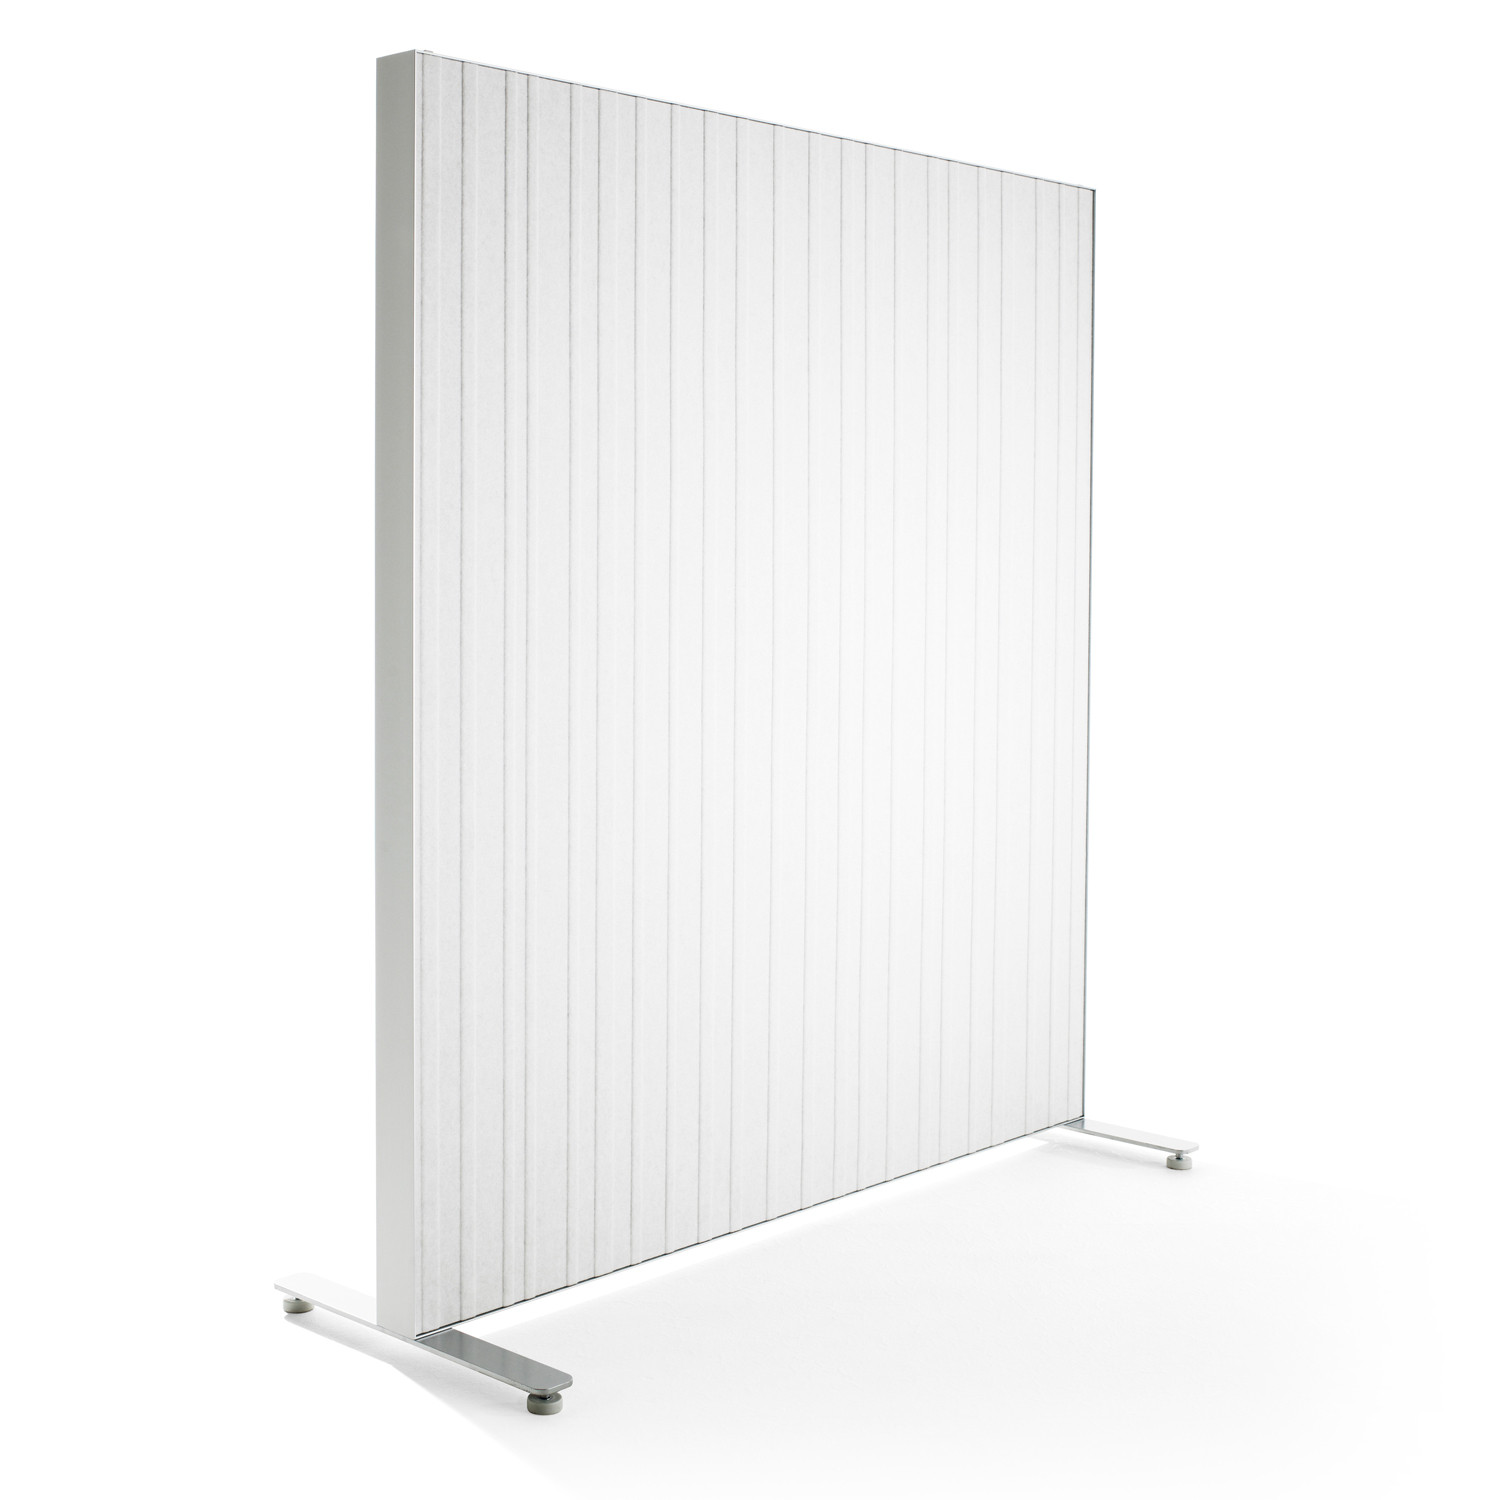 Alumi Freestanding Screen